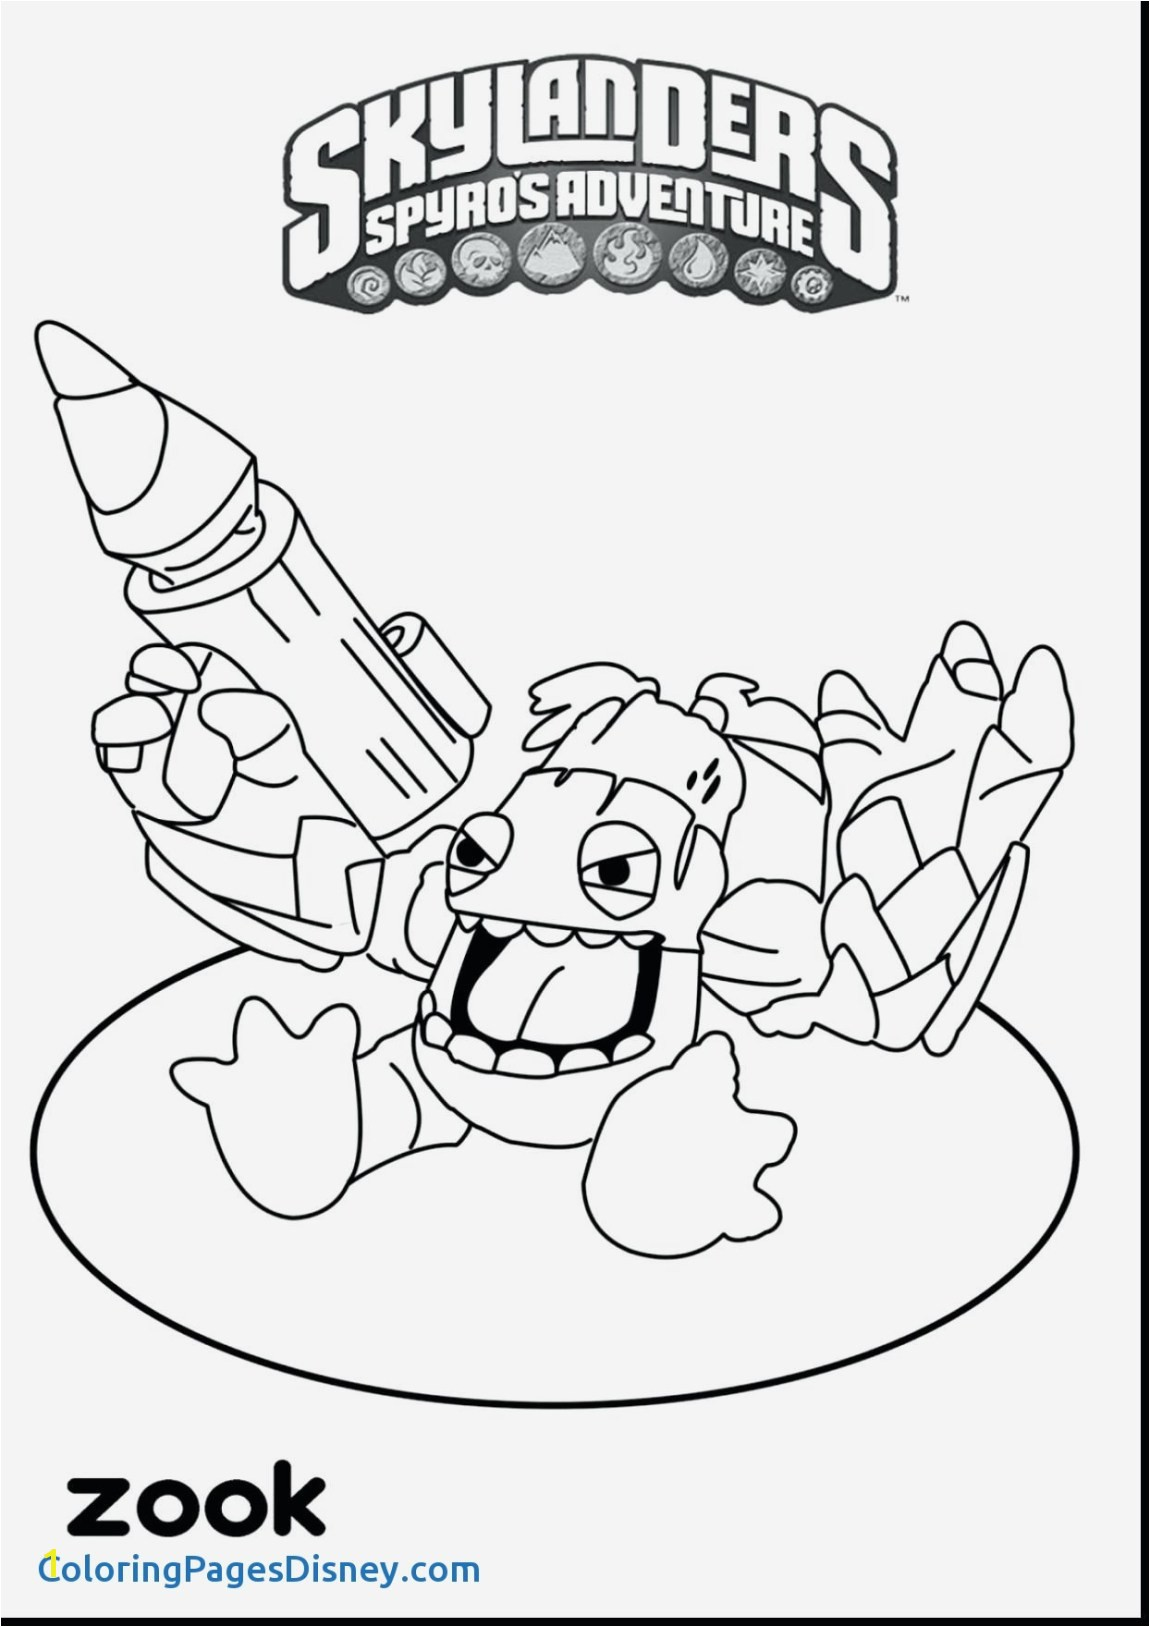 Happy Easter Signs Coloring Pages 14 Unique Happy Easter Signs Coloring Pages